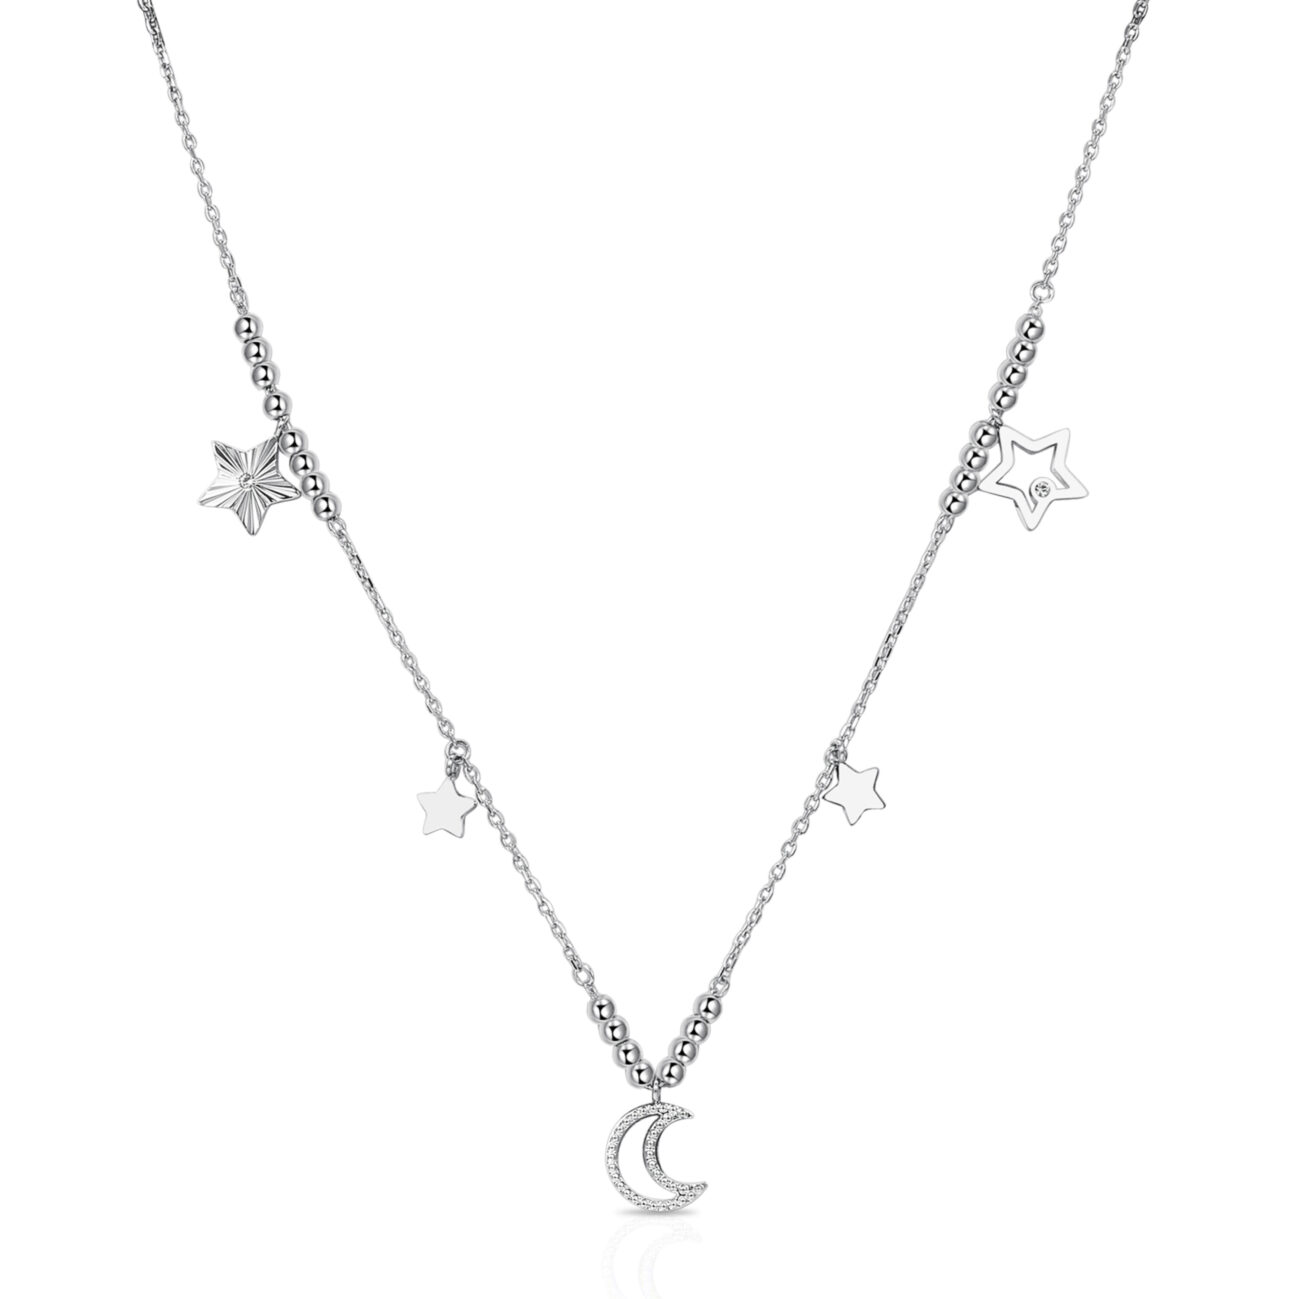 316L stainless steel necklace, with stars and moon pendants and Swarovski©crystals.